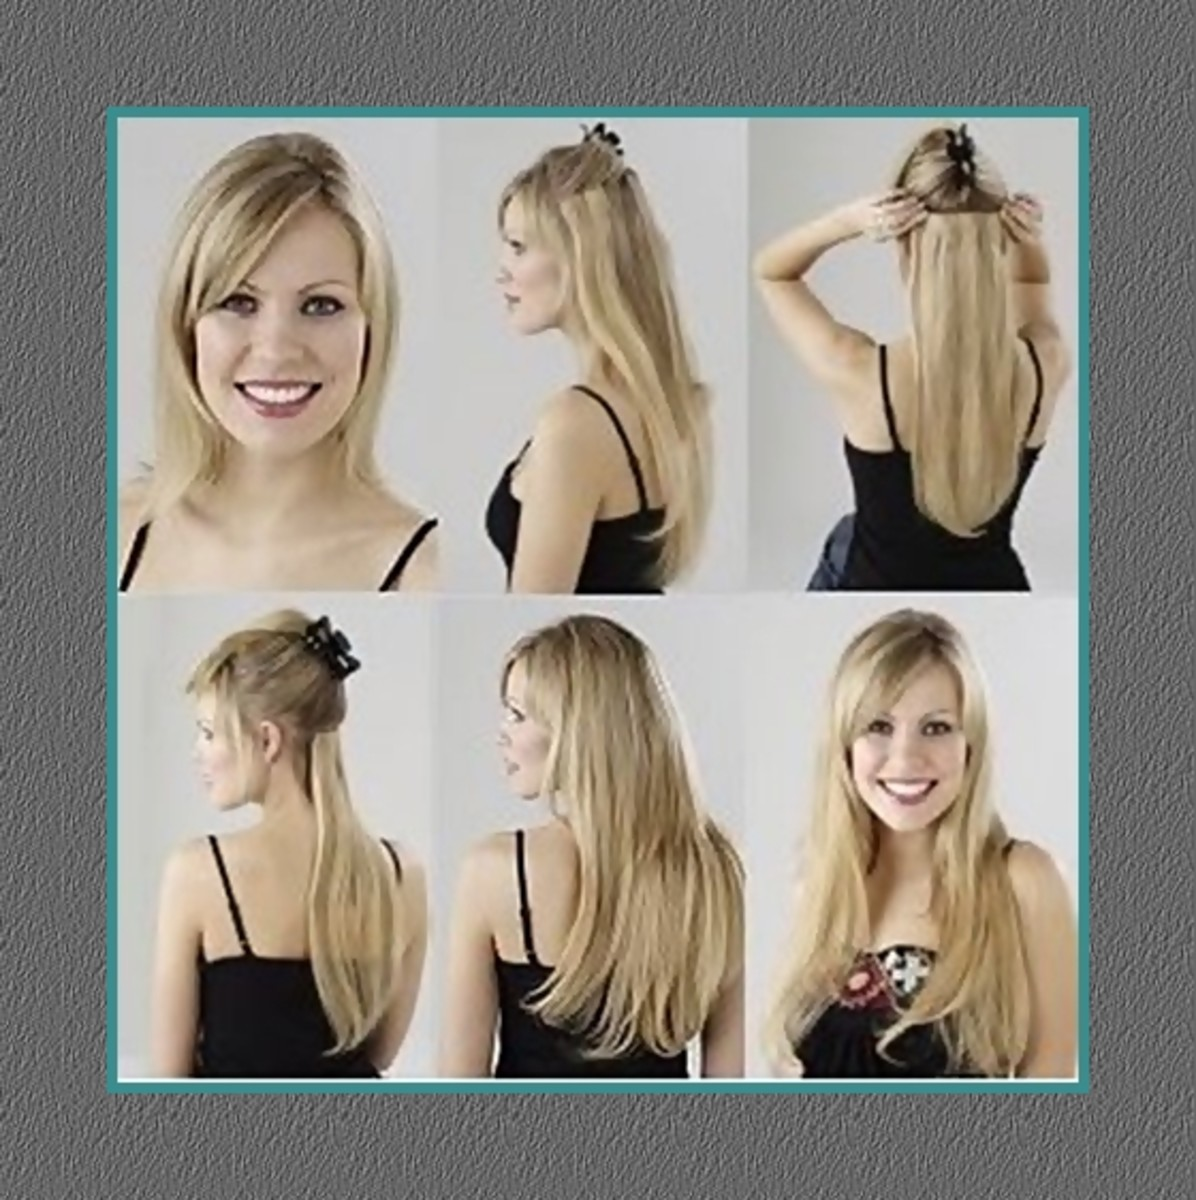 Human Hair Clip Hair Extensions - 2013 Hairstyles for Women - How to wear hair clip extensions, by Rosie2010